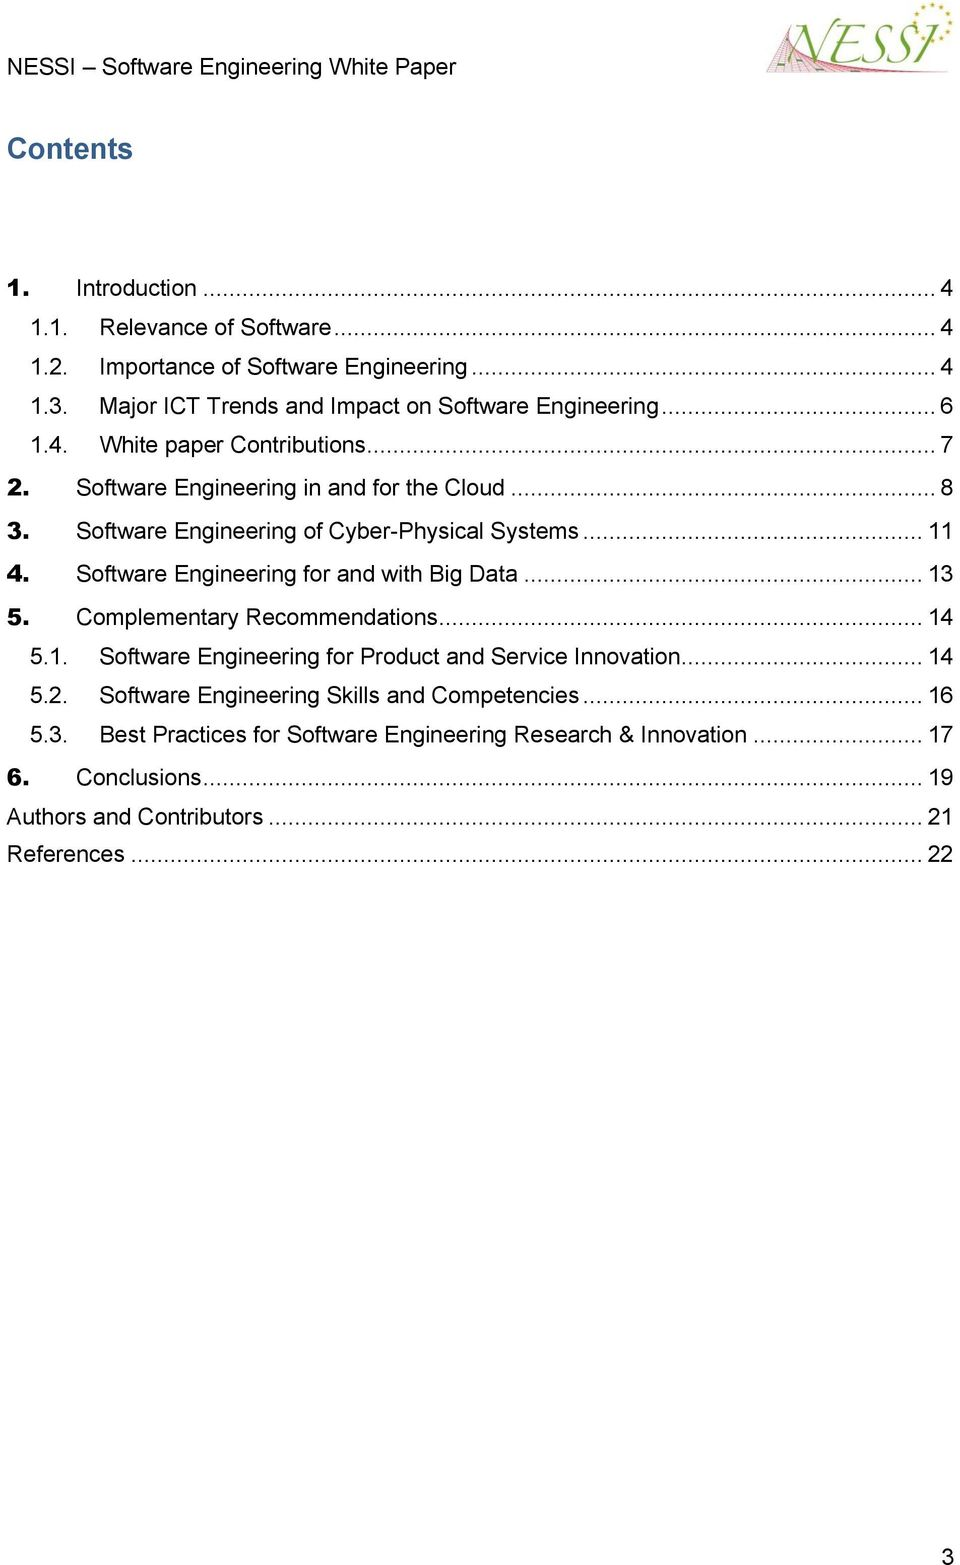 Software Engineering for and with Big Data... 13 5. Complementary Recommendations... 14 5.1. Software Engineering for Product and Service Innovation... 14 5.2.